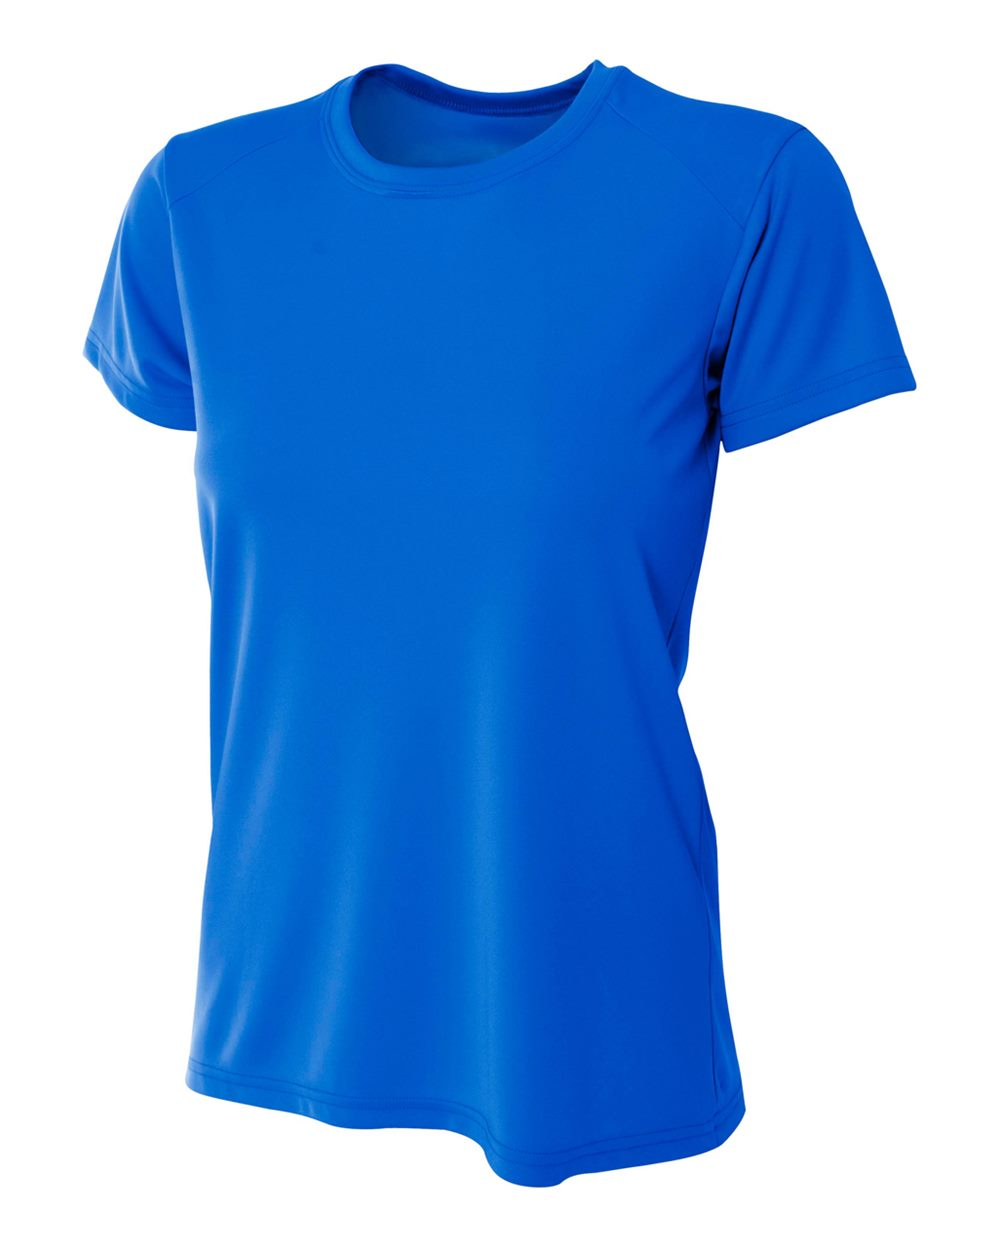 womens-polo-mwicking-royal-blue.jpg